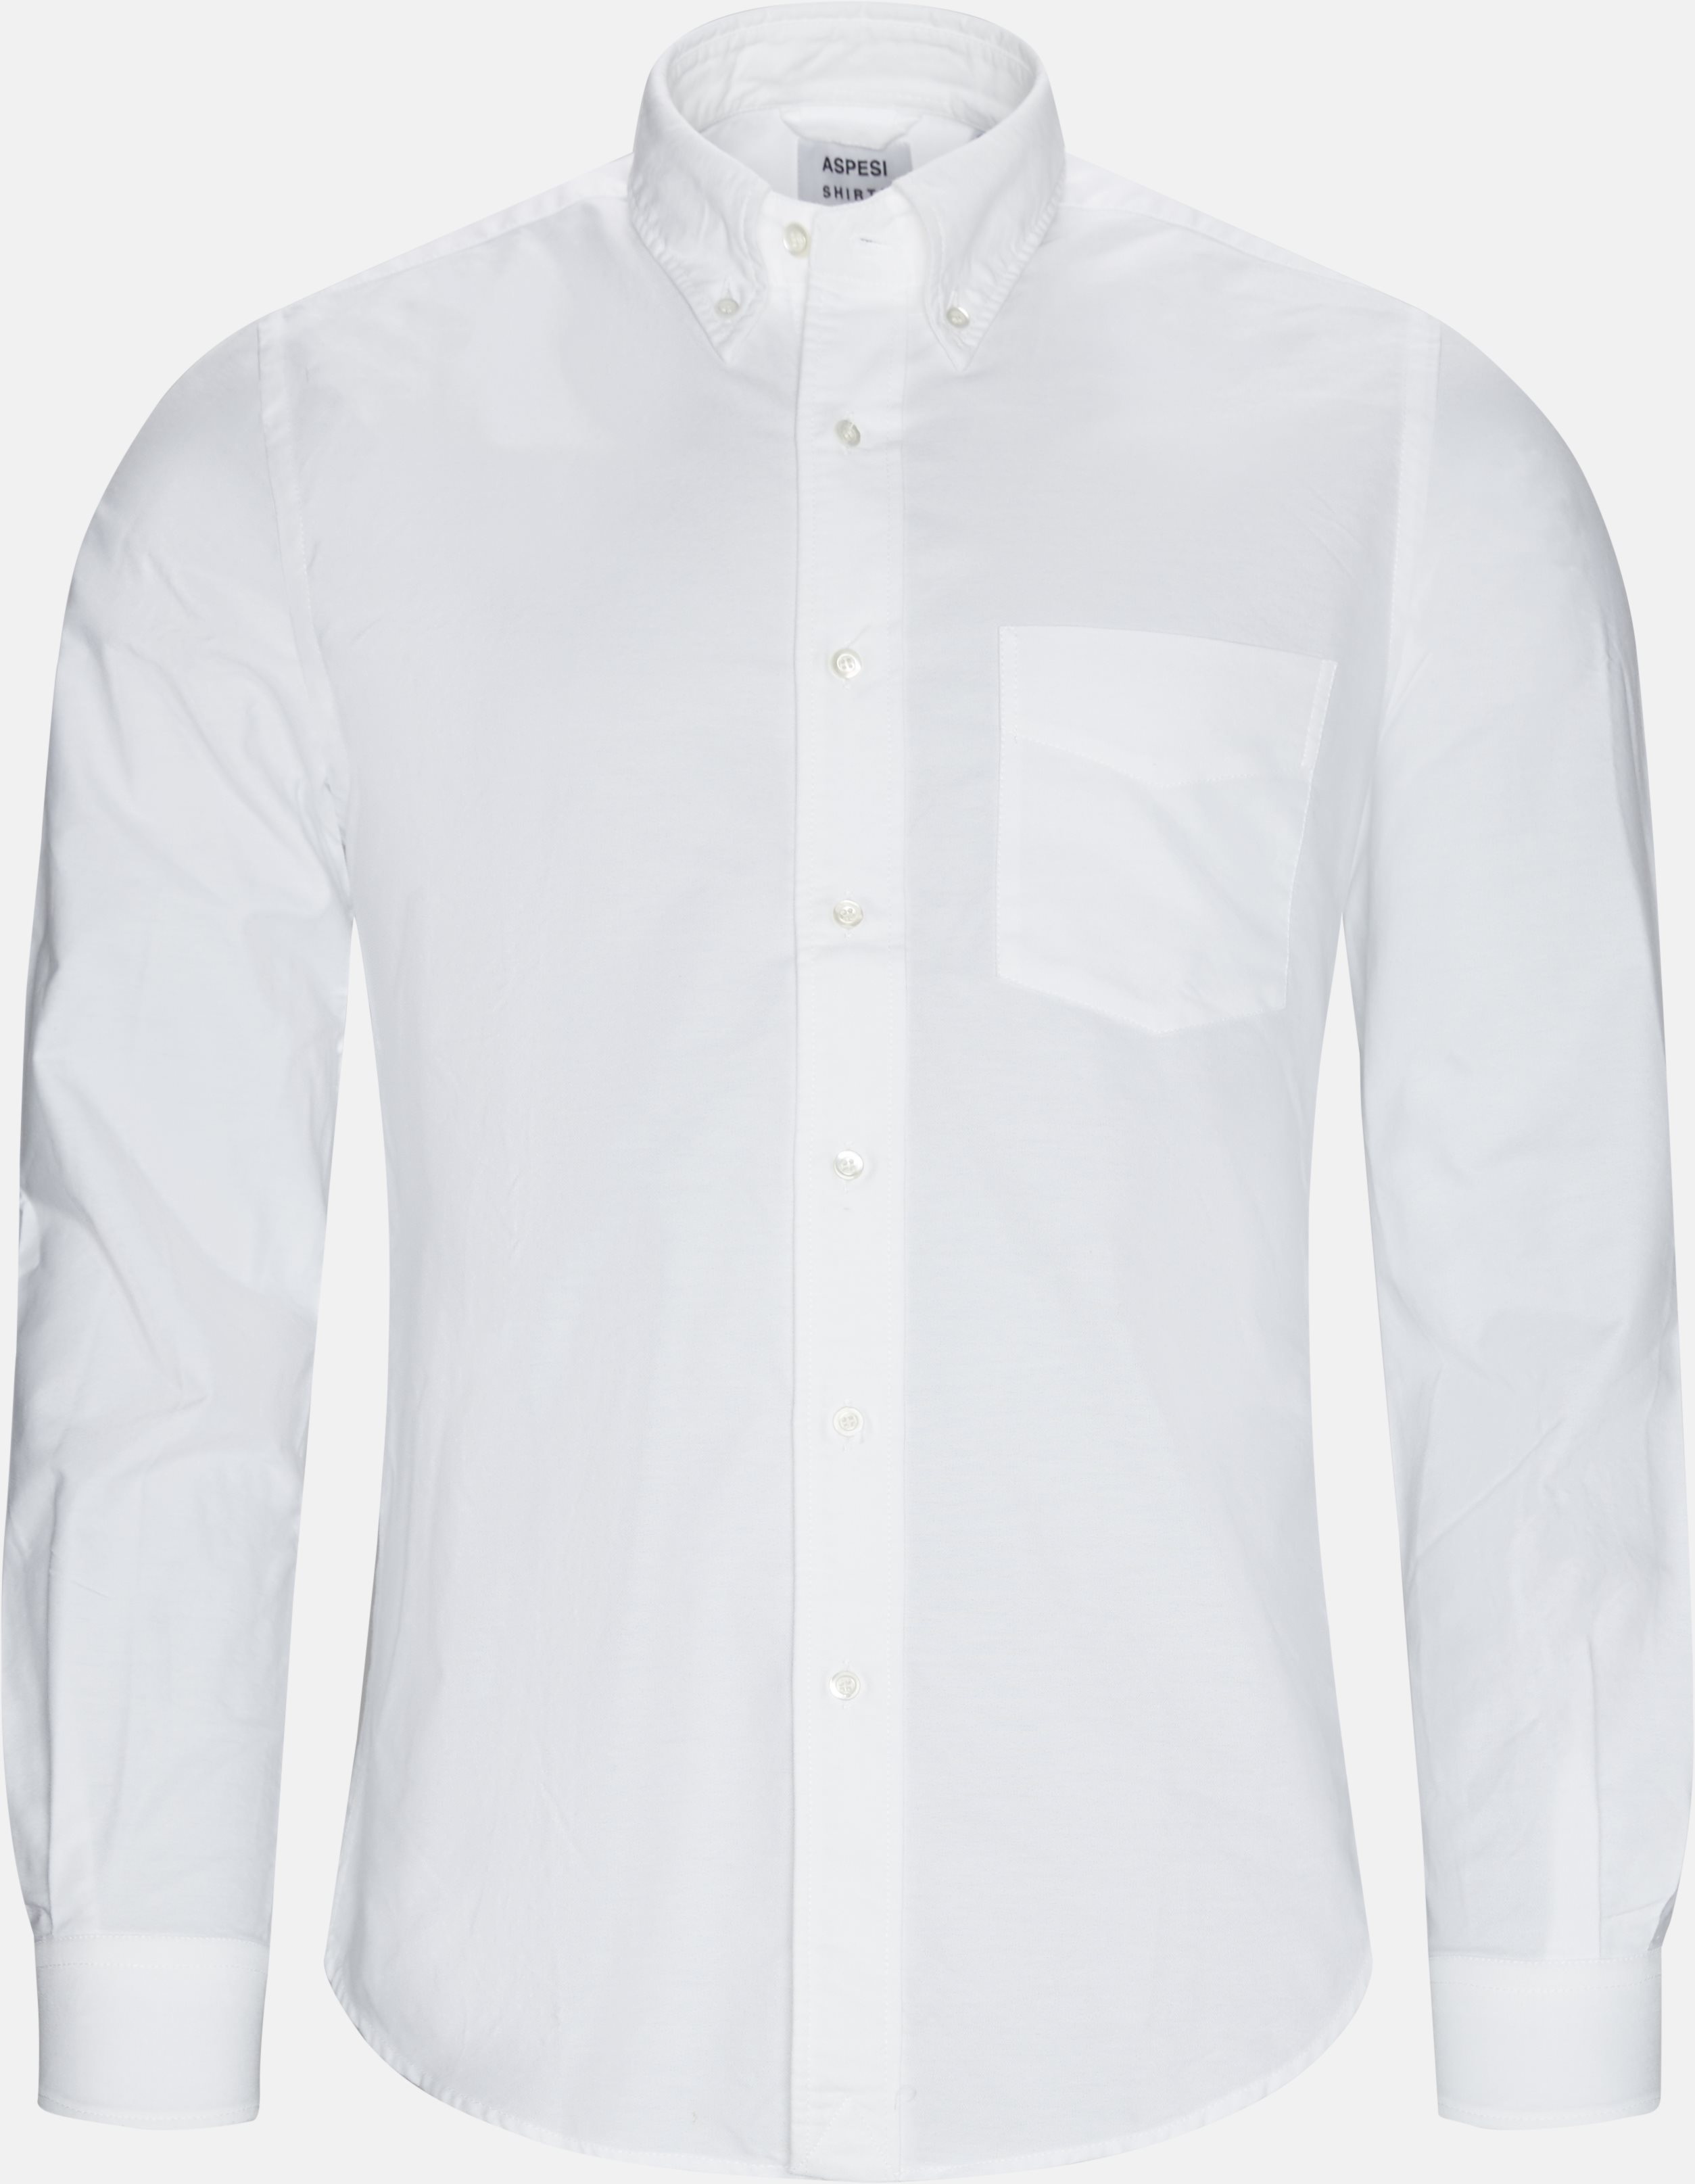 Shirts - Regular fit - White